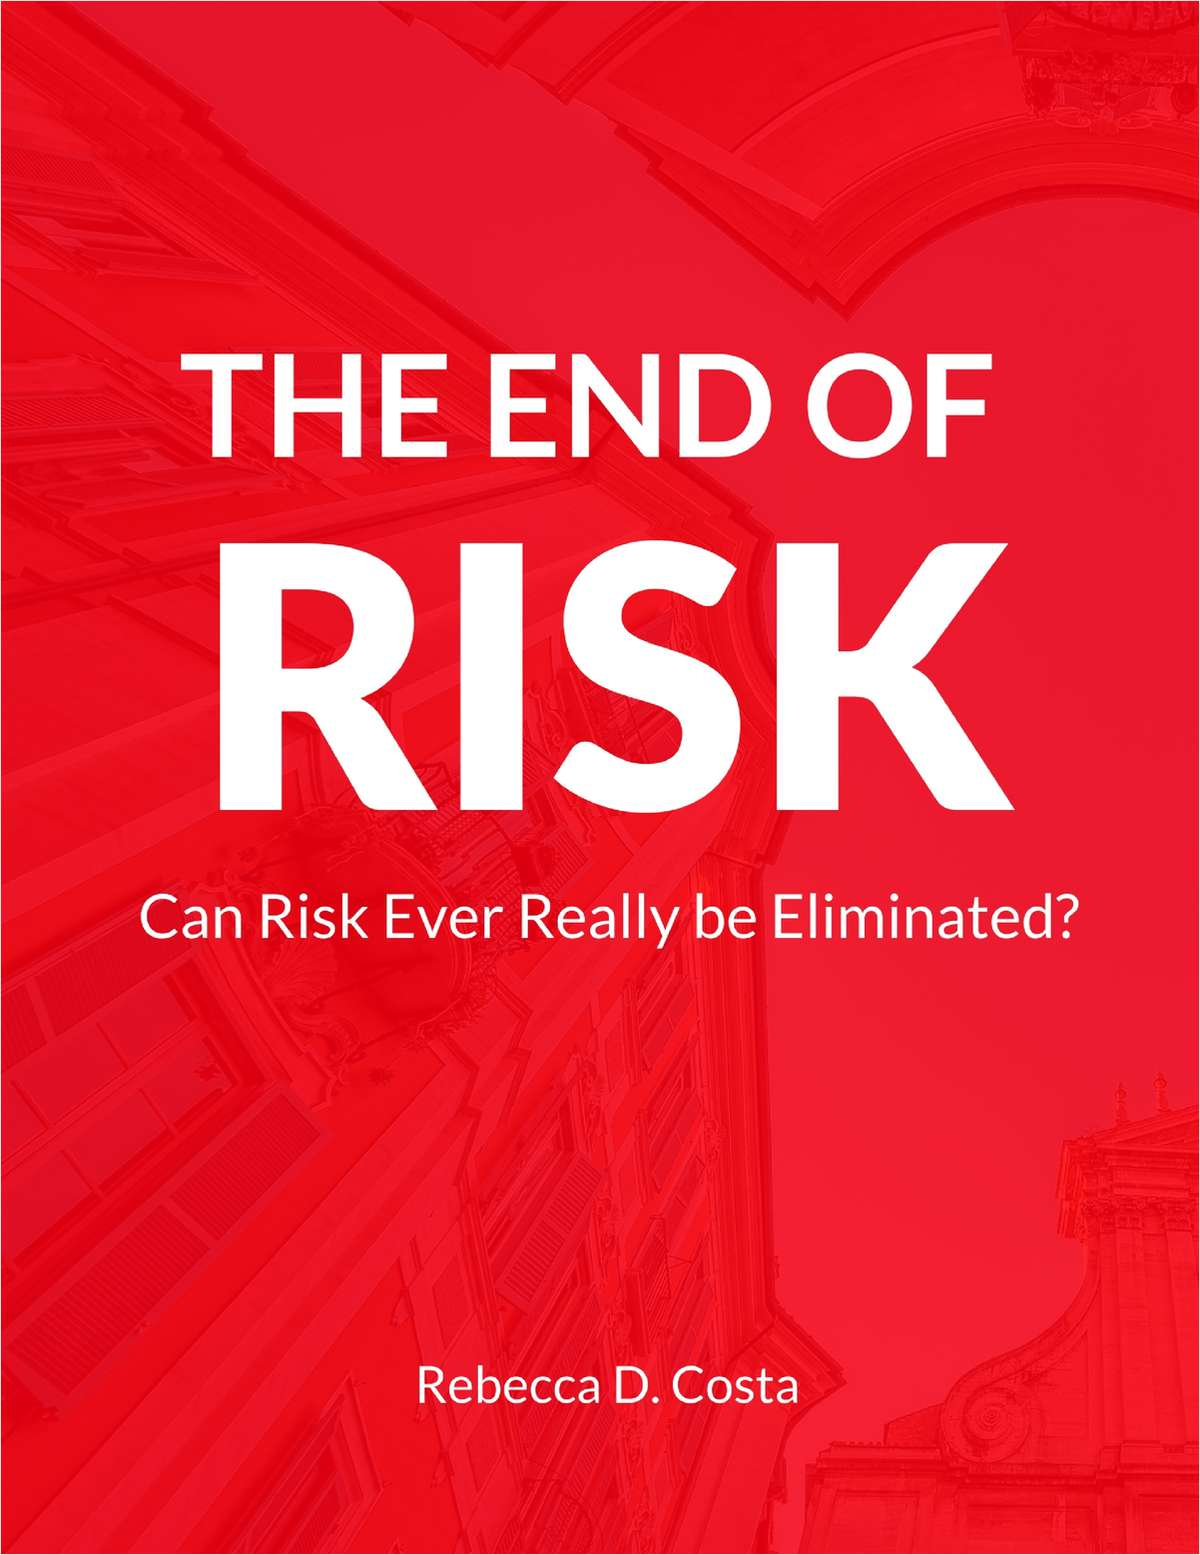 The End of Risk